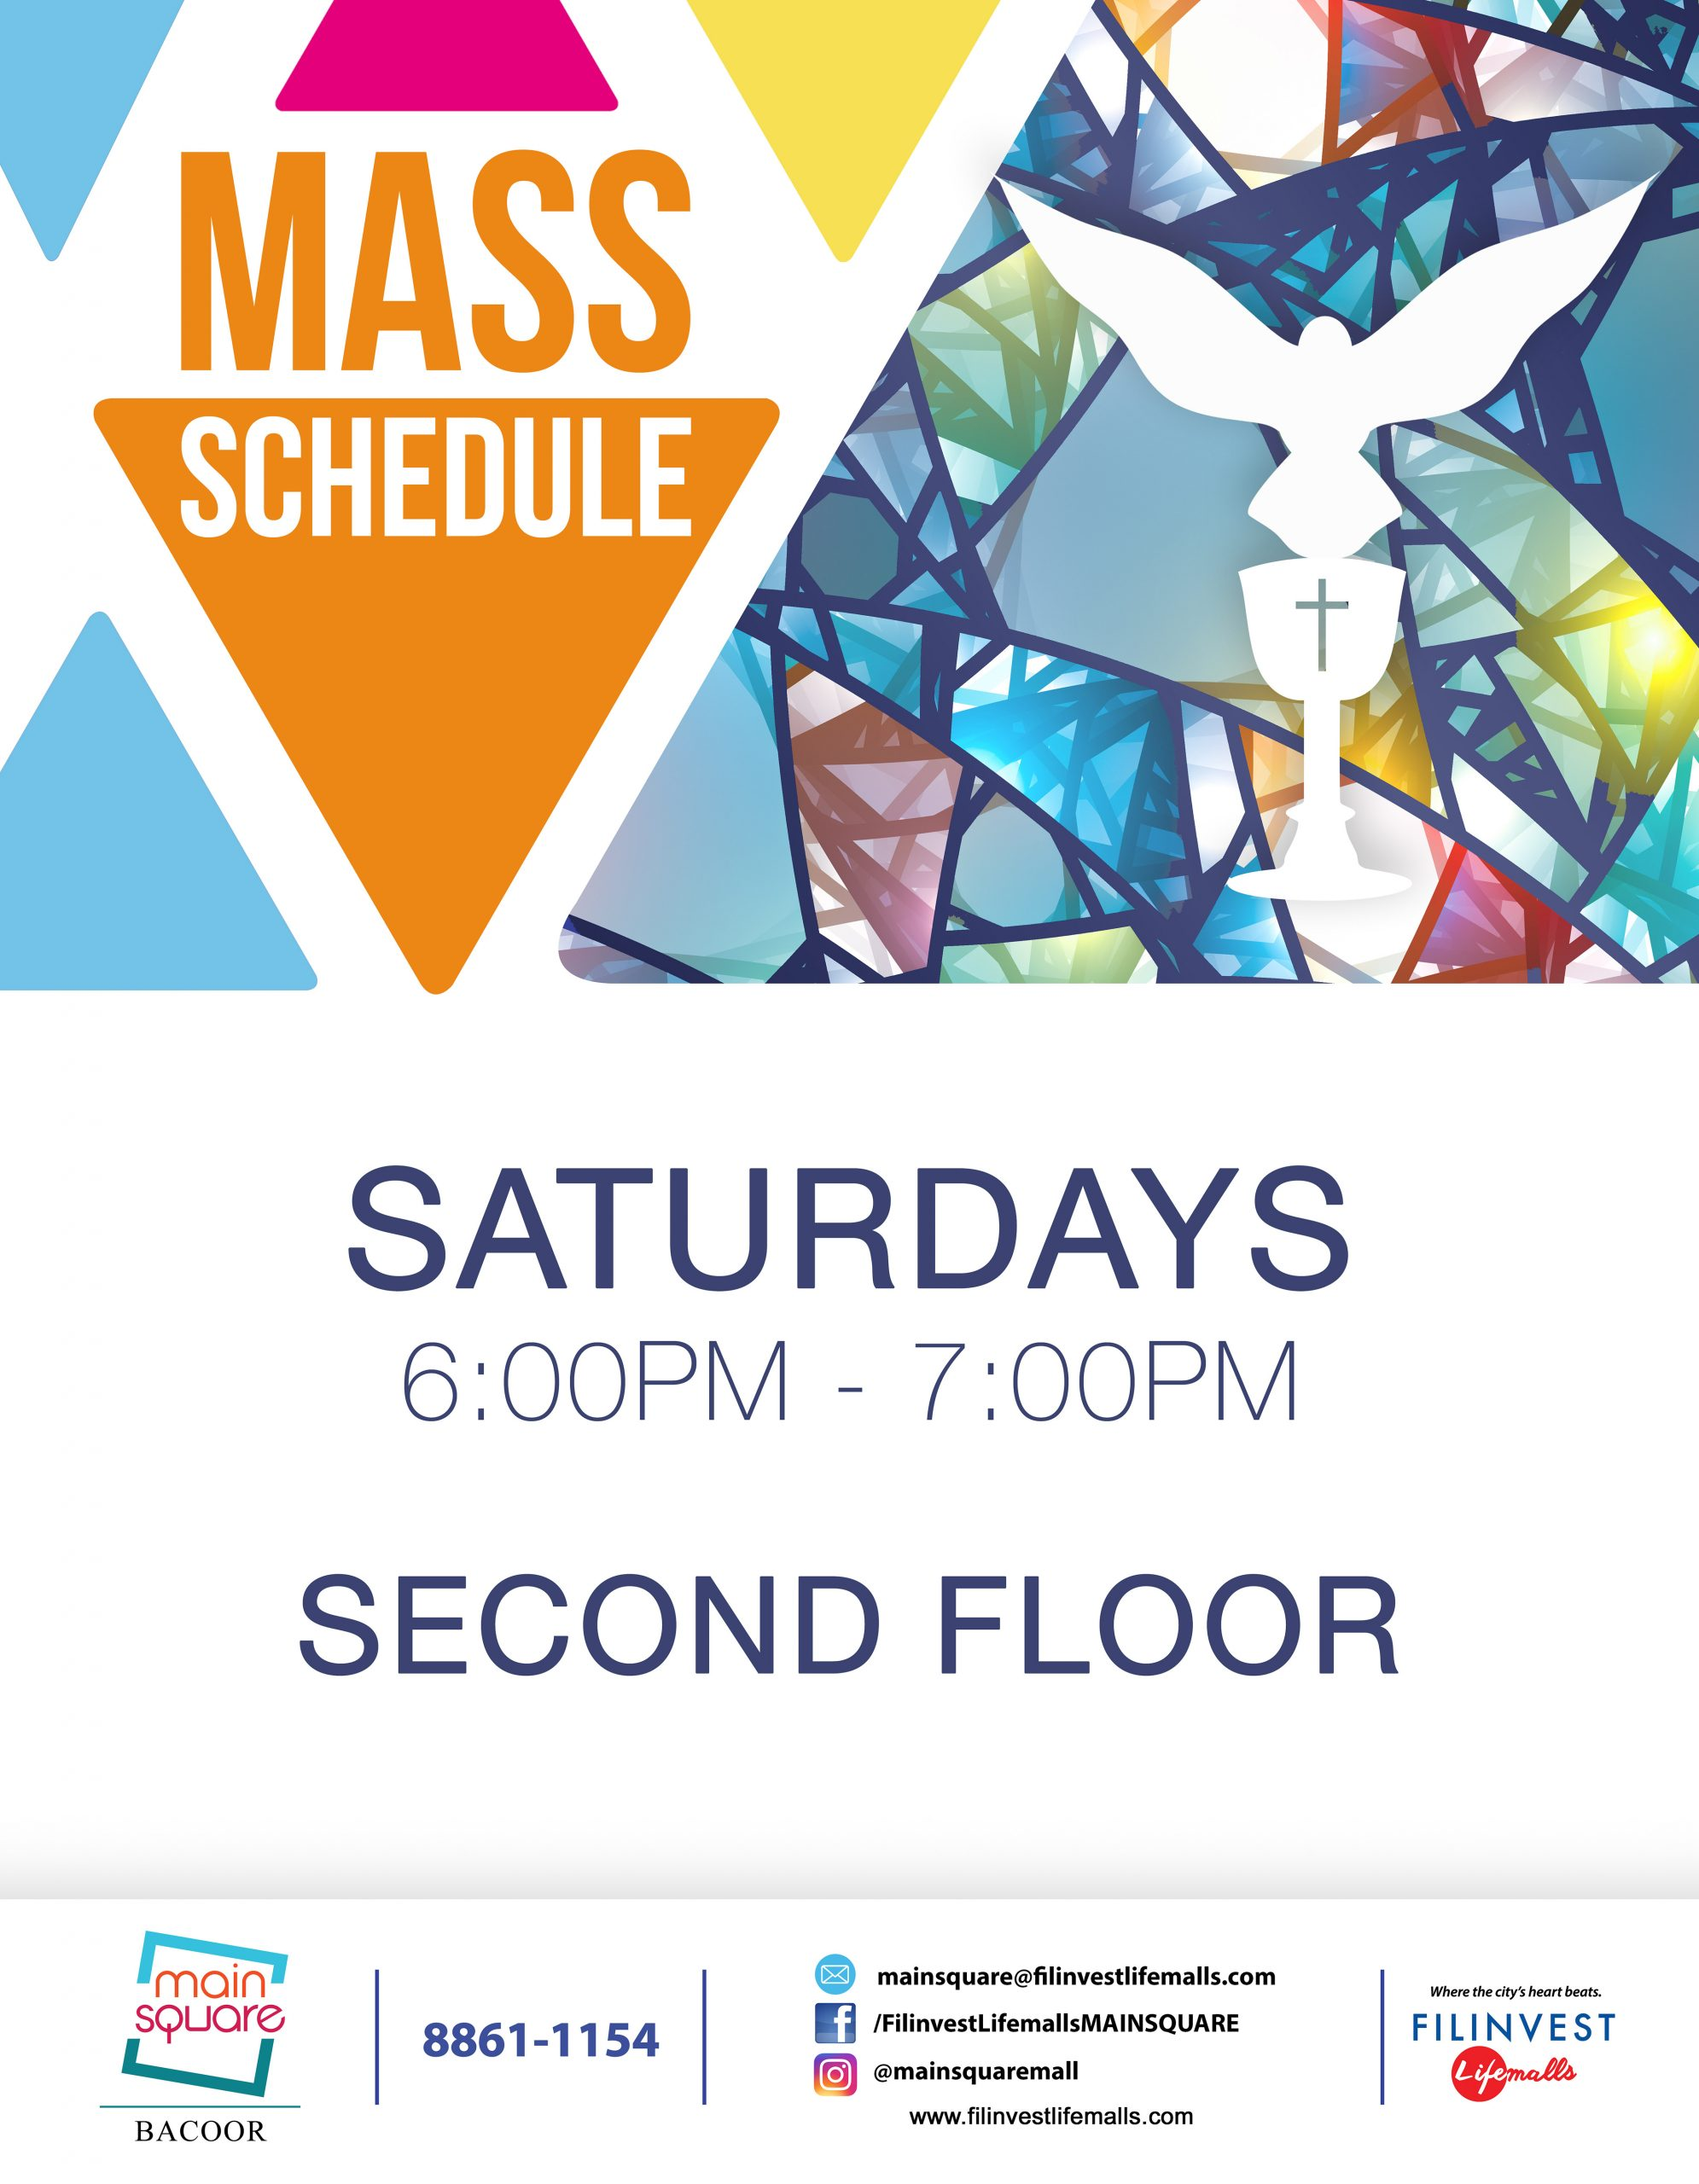 CELEBRATE THE HOLY MASS AT MAIN SQUARE